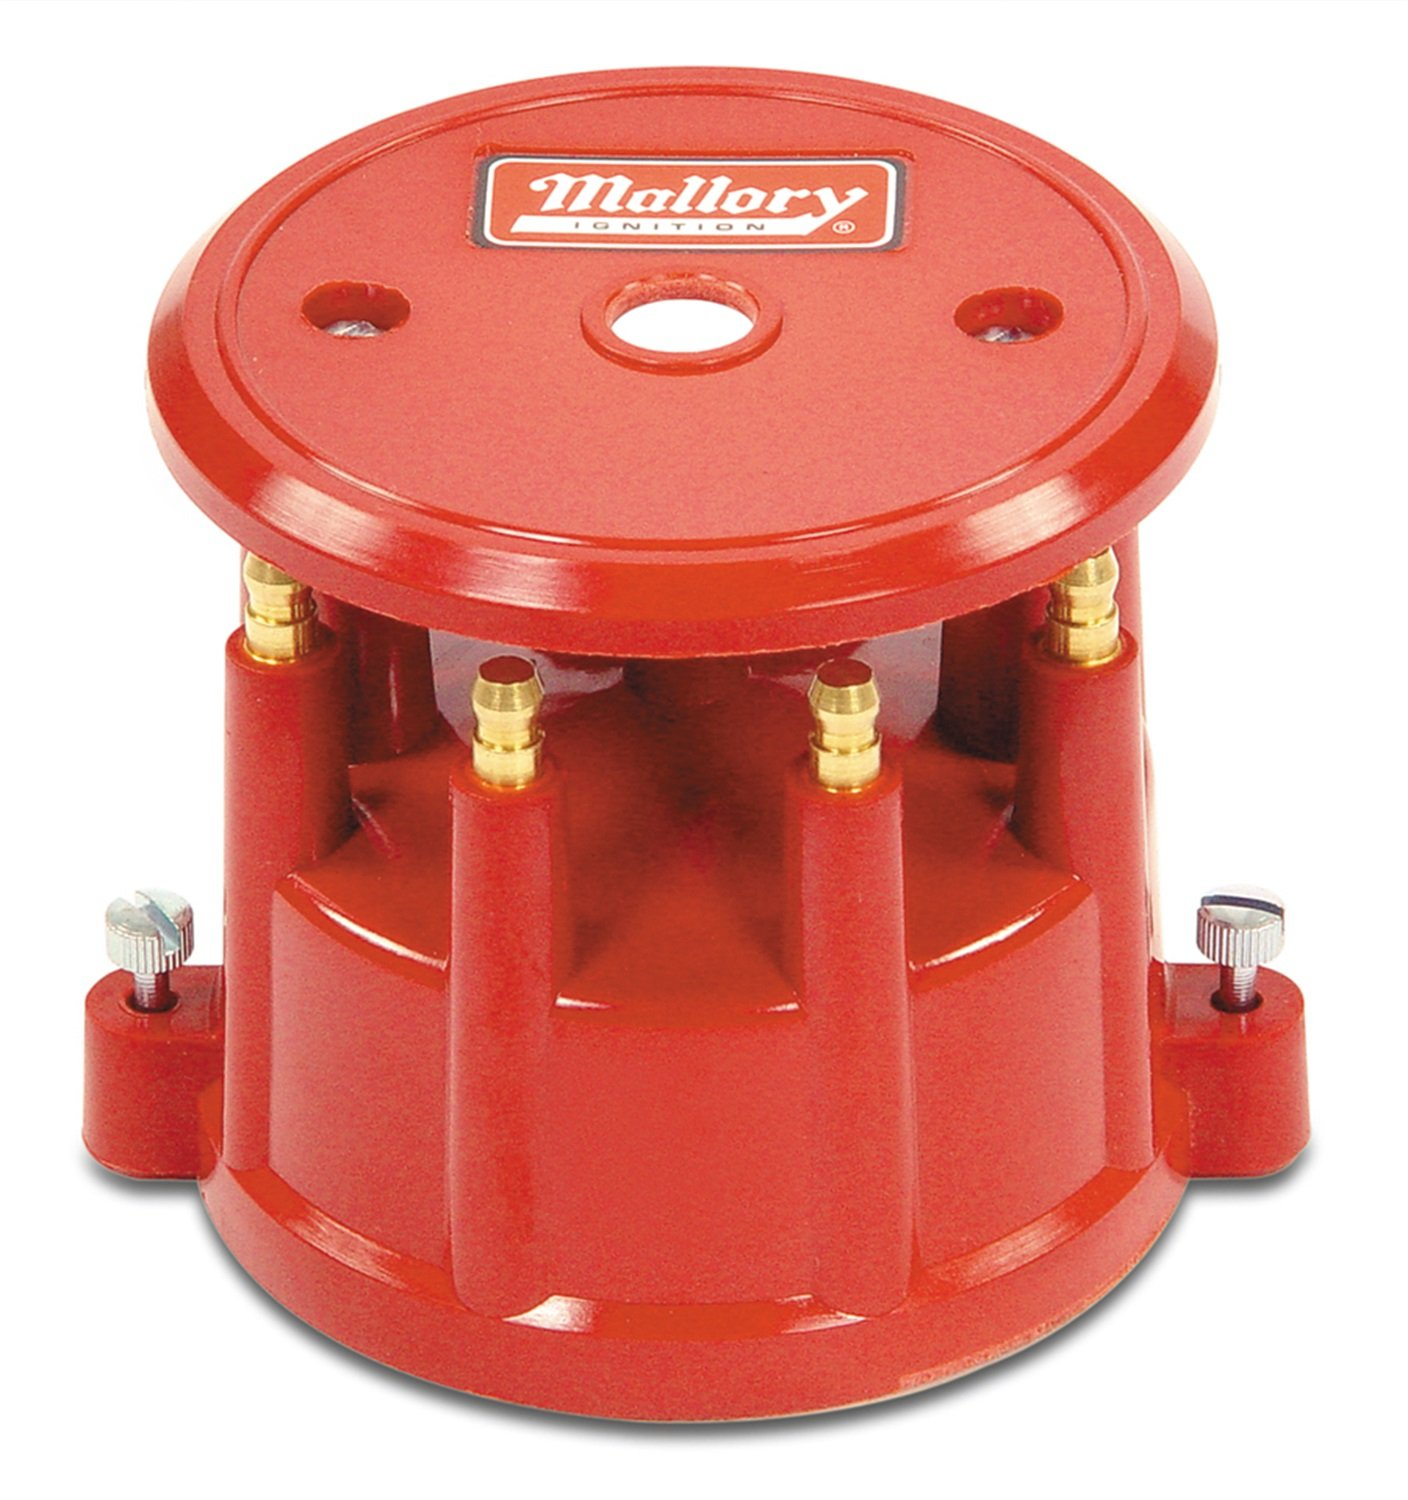 B000BWAN5O Mallory 208M Distributor Cap (8Cyl Screw Down Red) 71q70IQOPwL